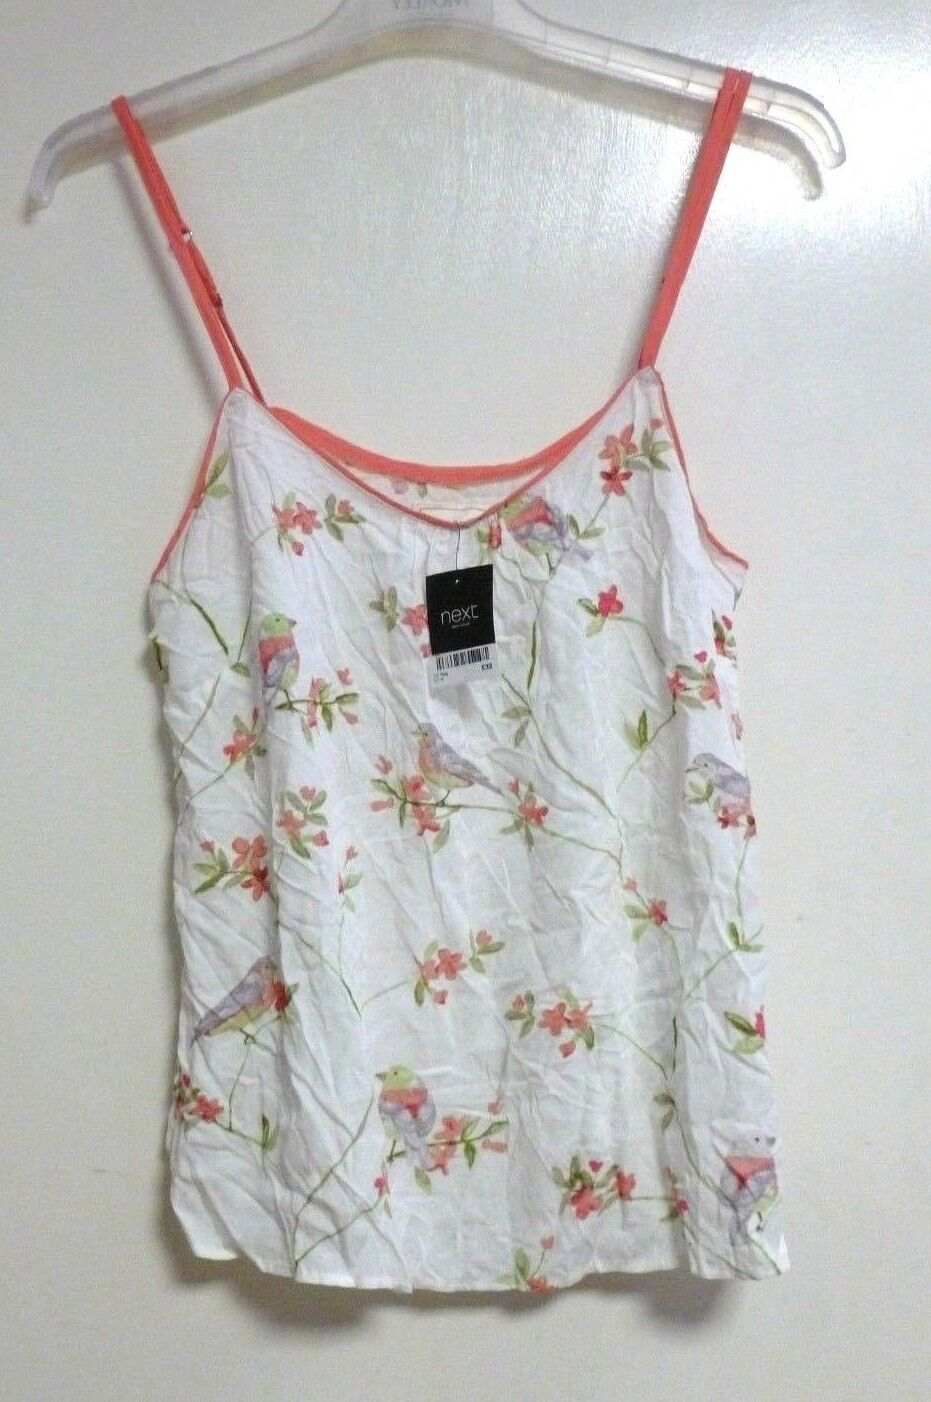 LADIES NEXT WHITE FLORAL PYJAMA VEST TOP SIZE 12R RRP  NEW CR180 DD 11